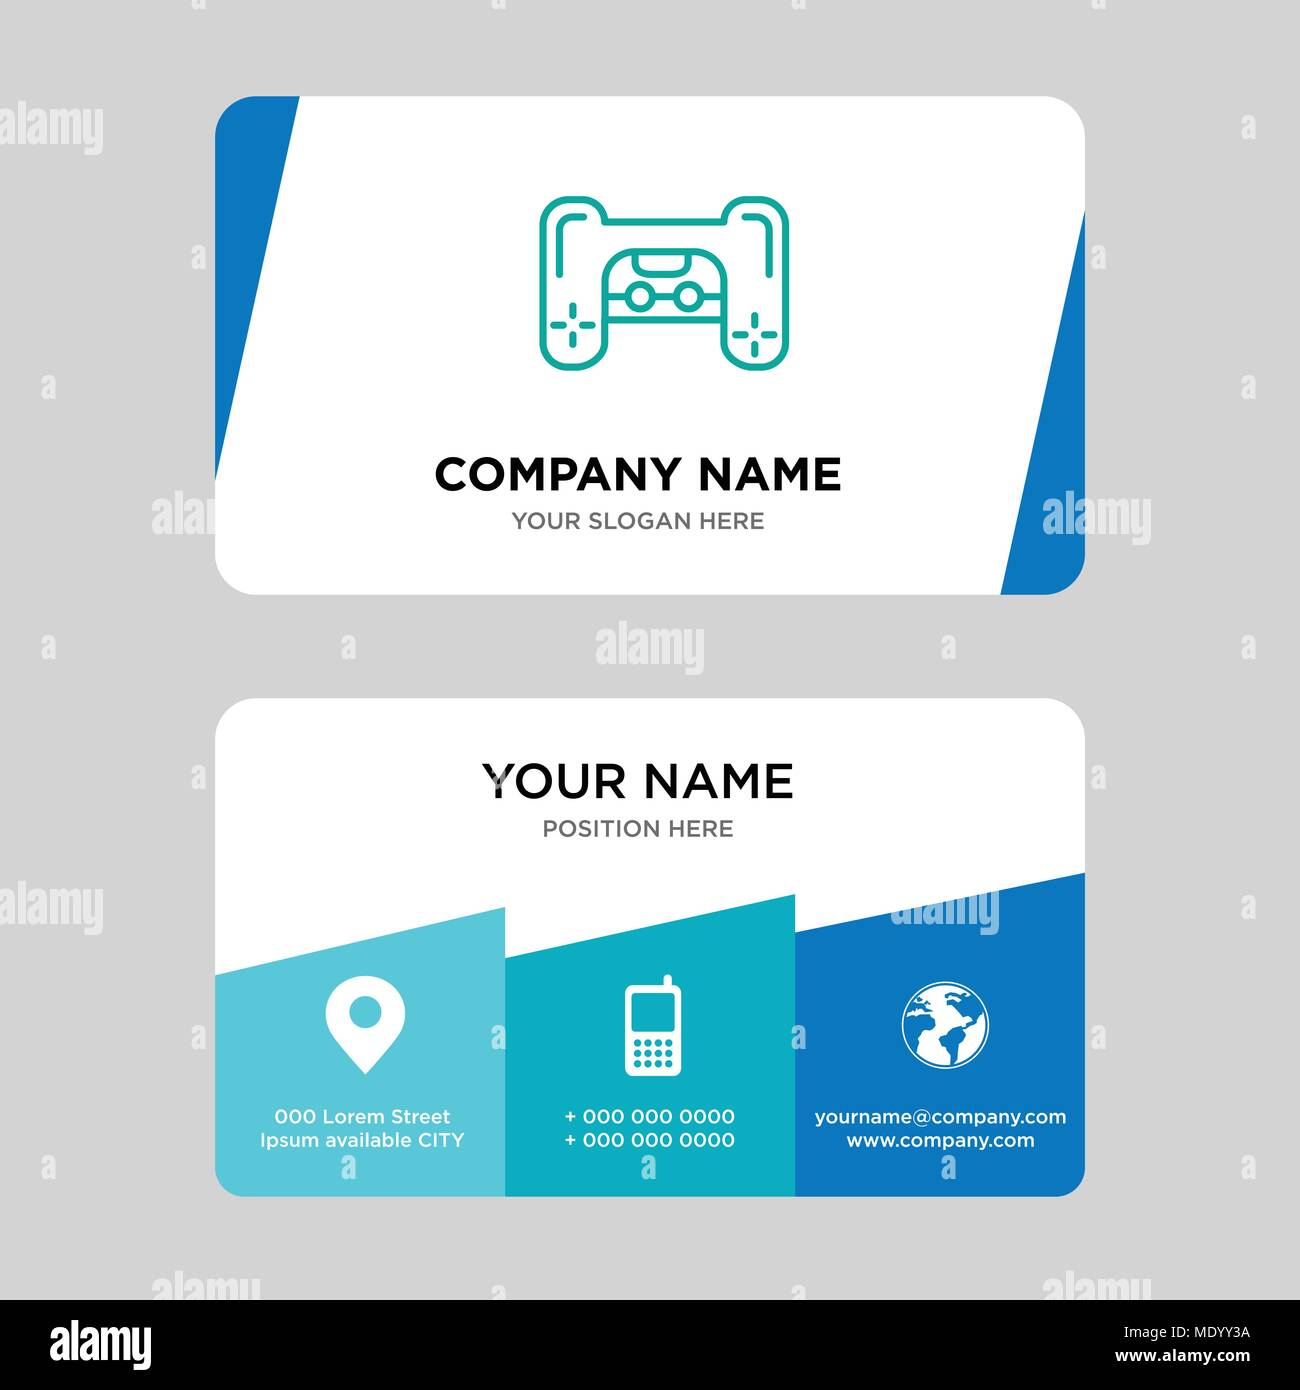 Playstation business card design template visiting for your company playstation business card design template visiting for your company modern creative and clean identity card vector illustration reheart Images